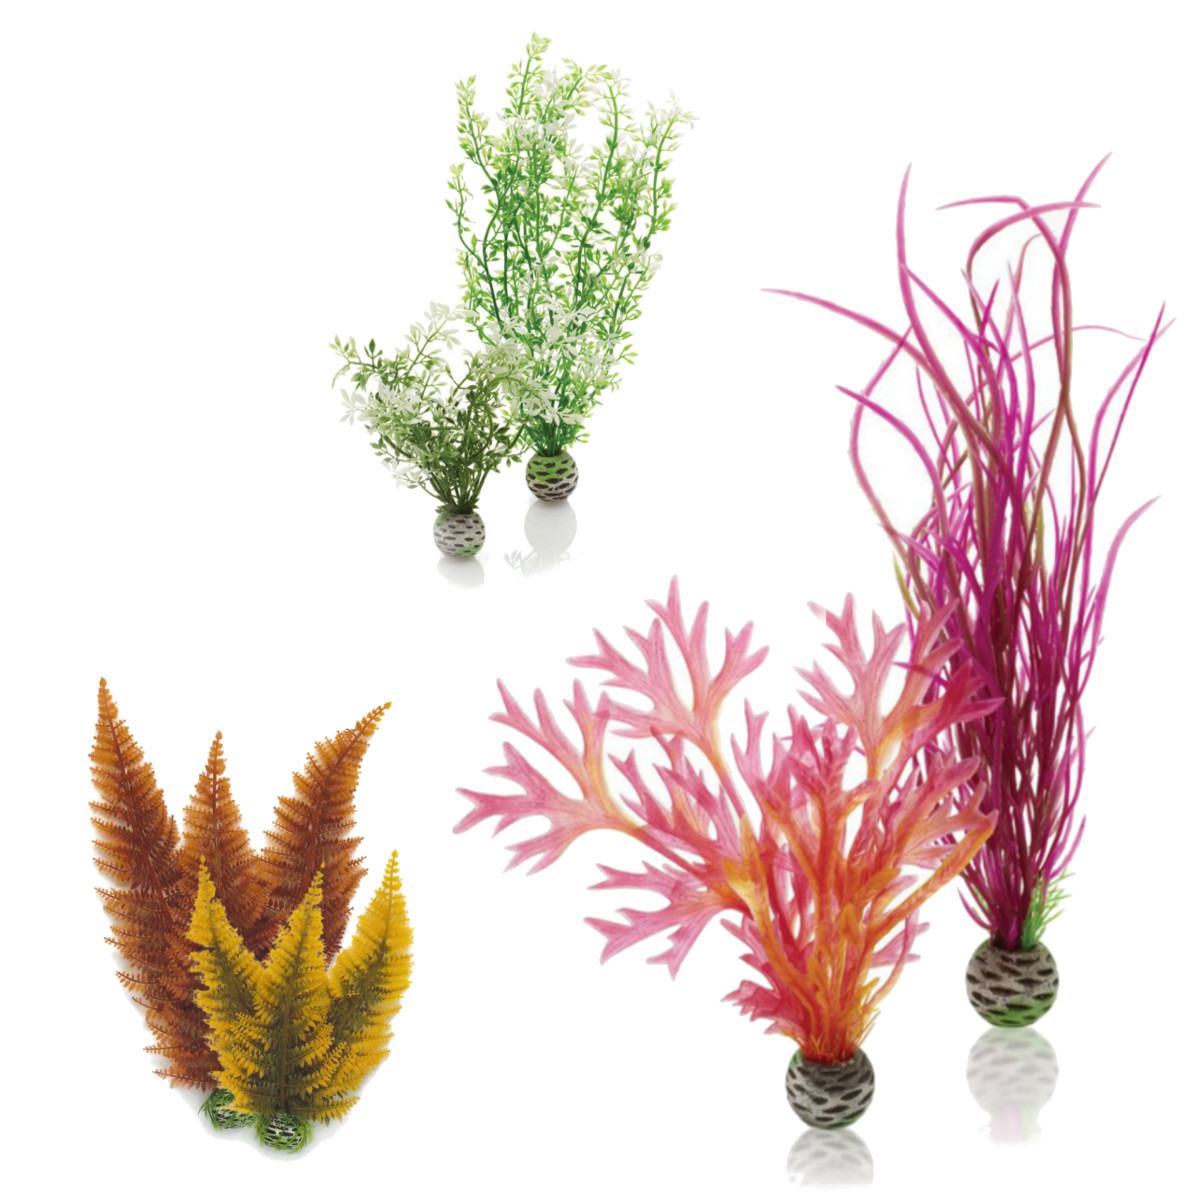 biorb aquatic decoration 2 packs